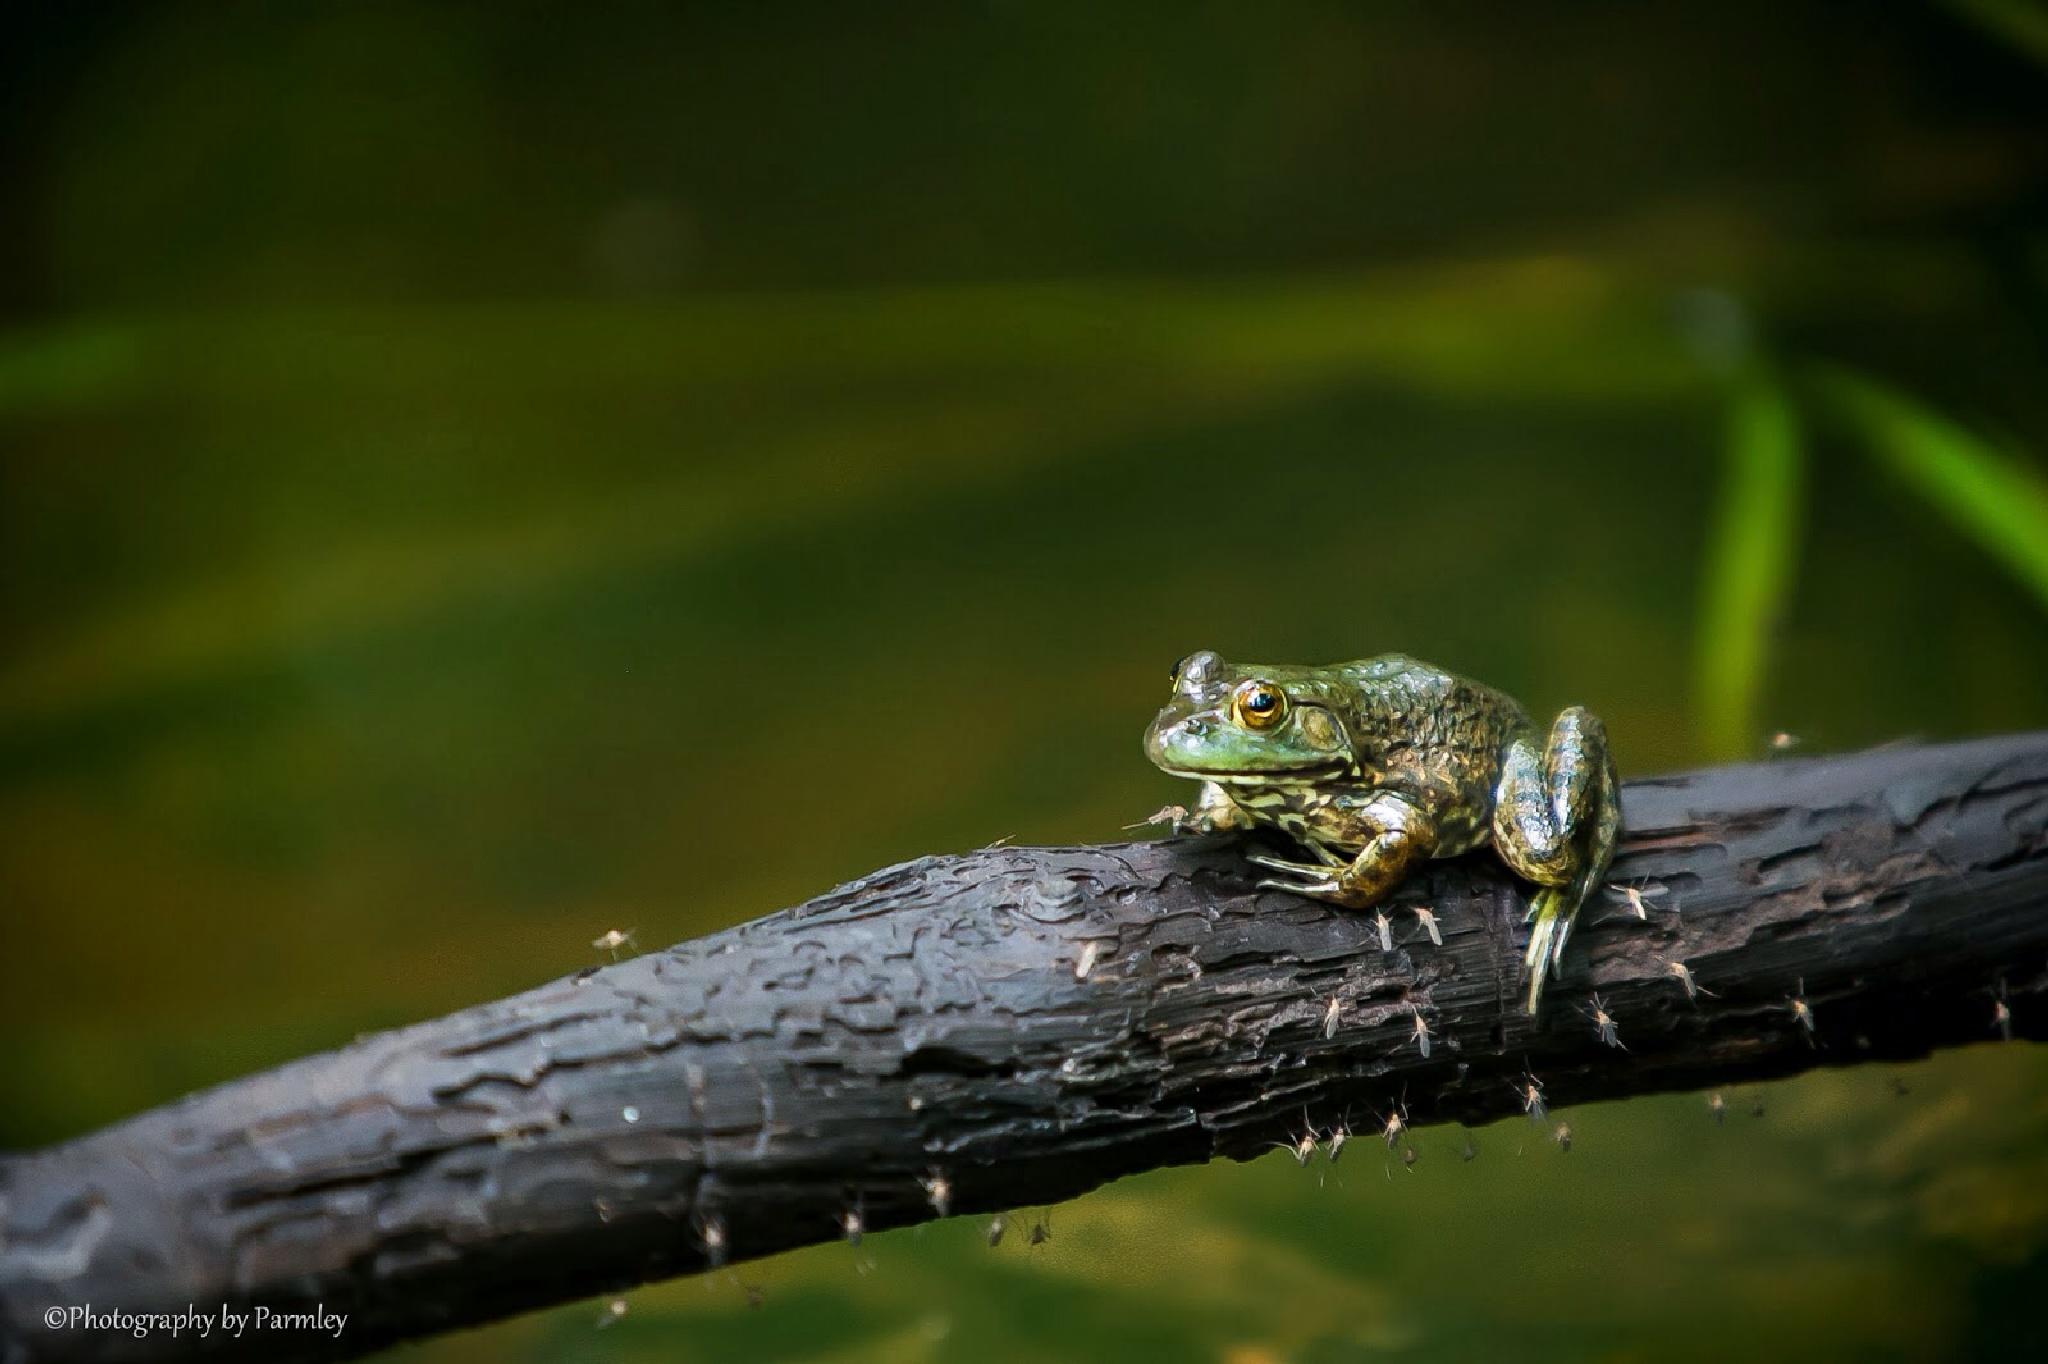 The Frog by JP Parmley